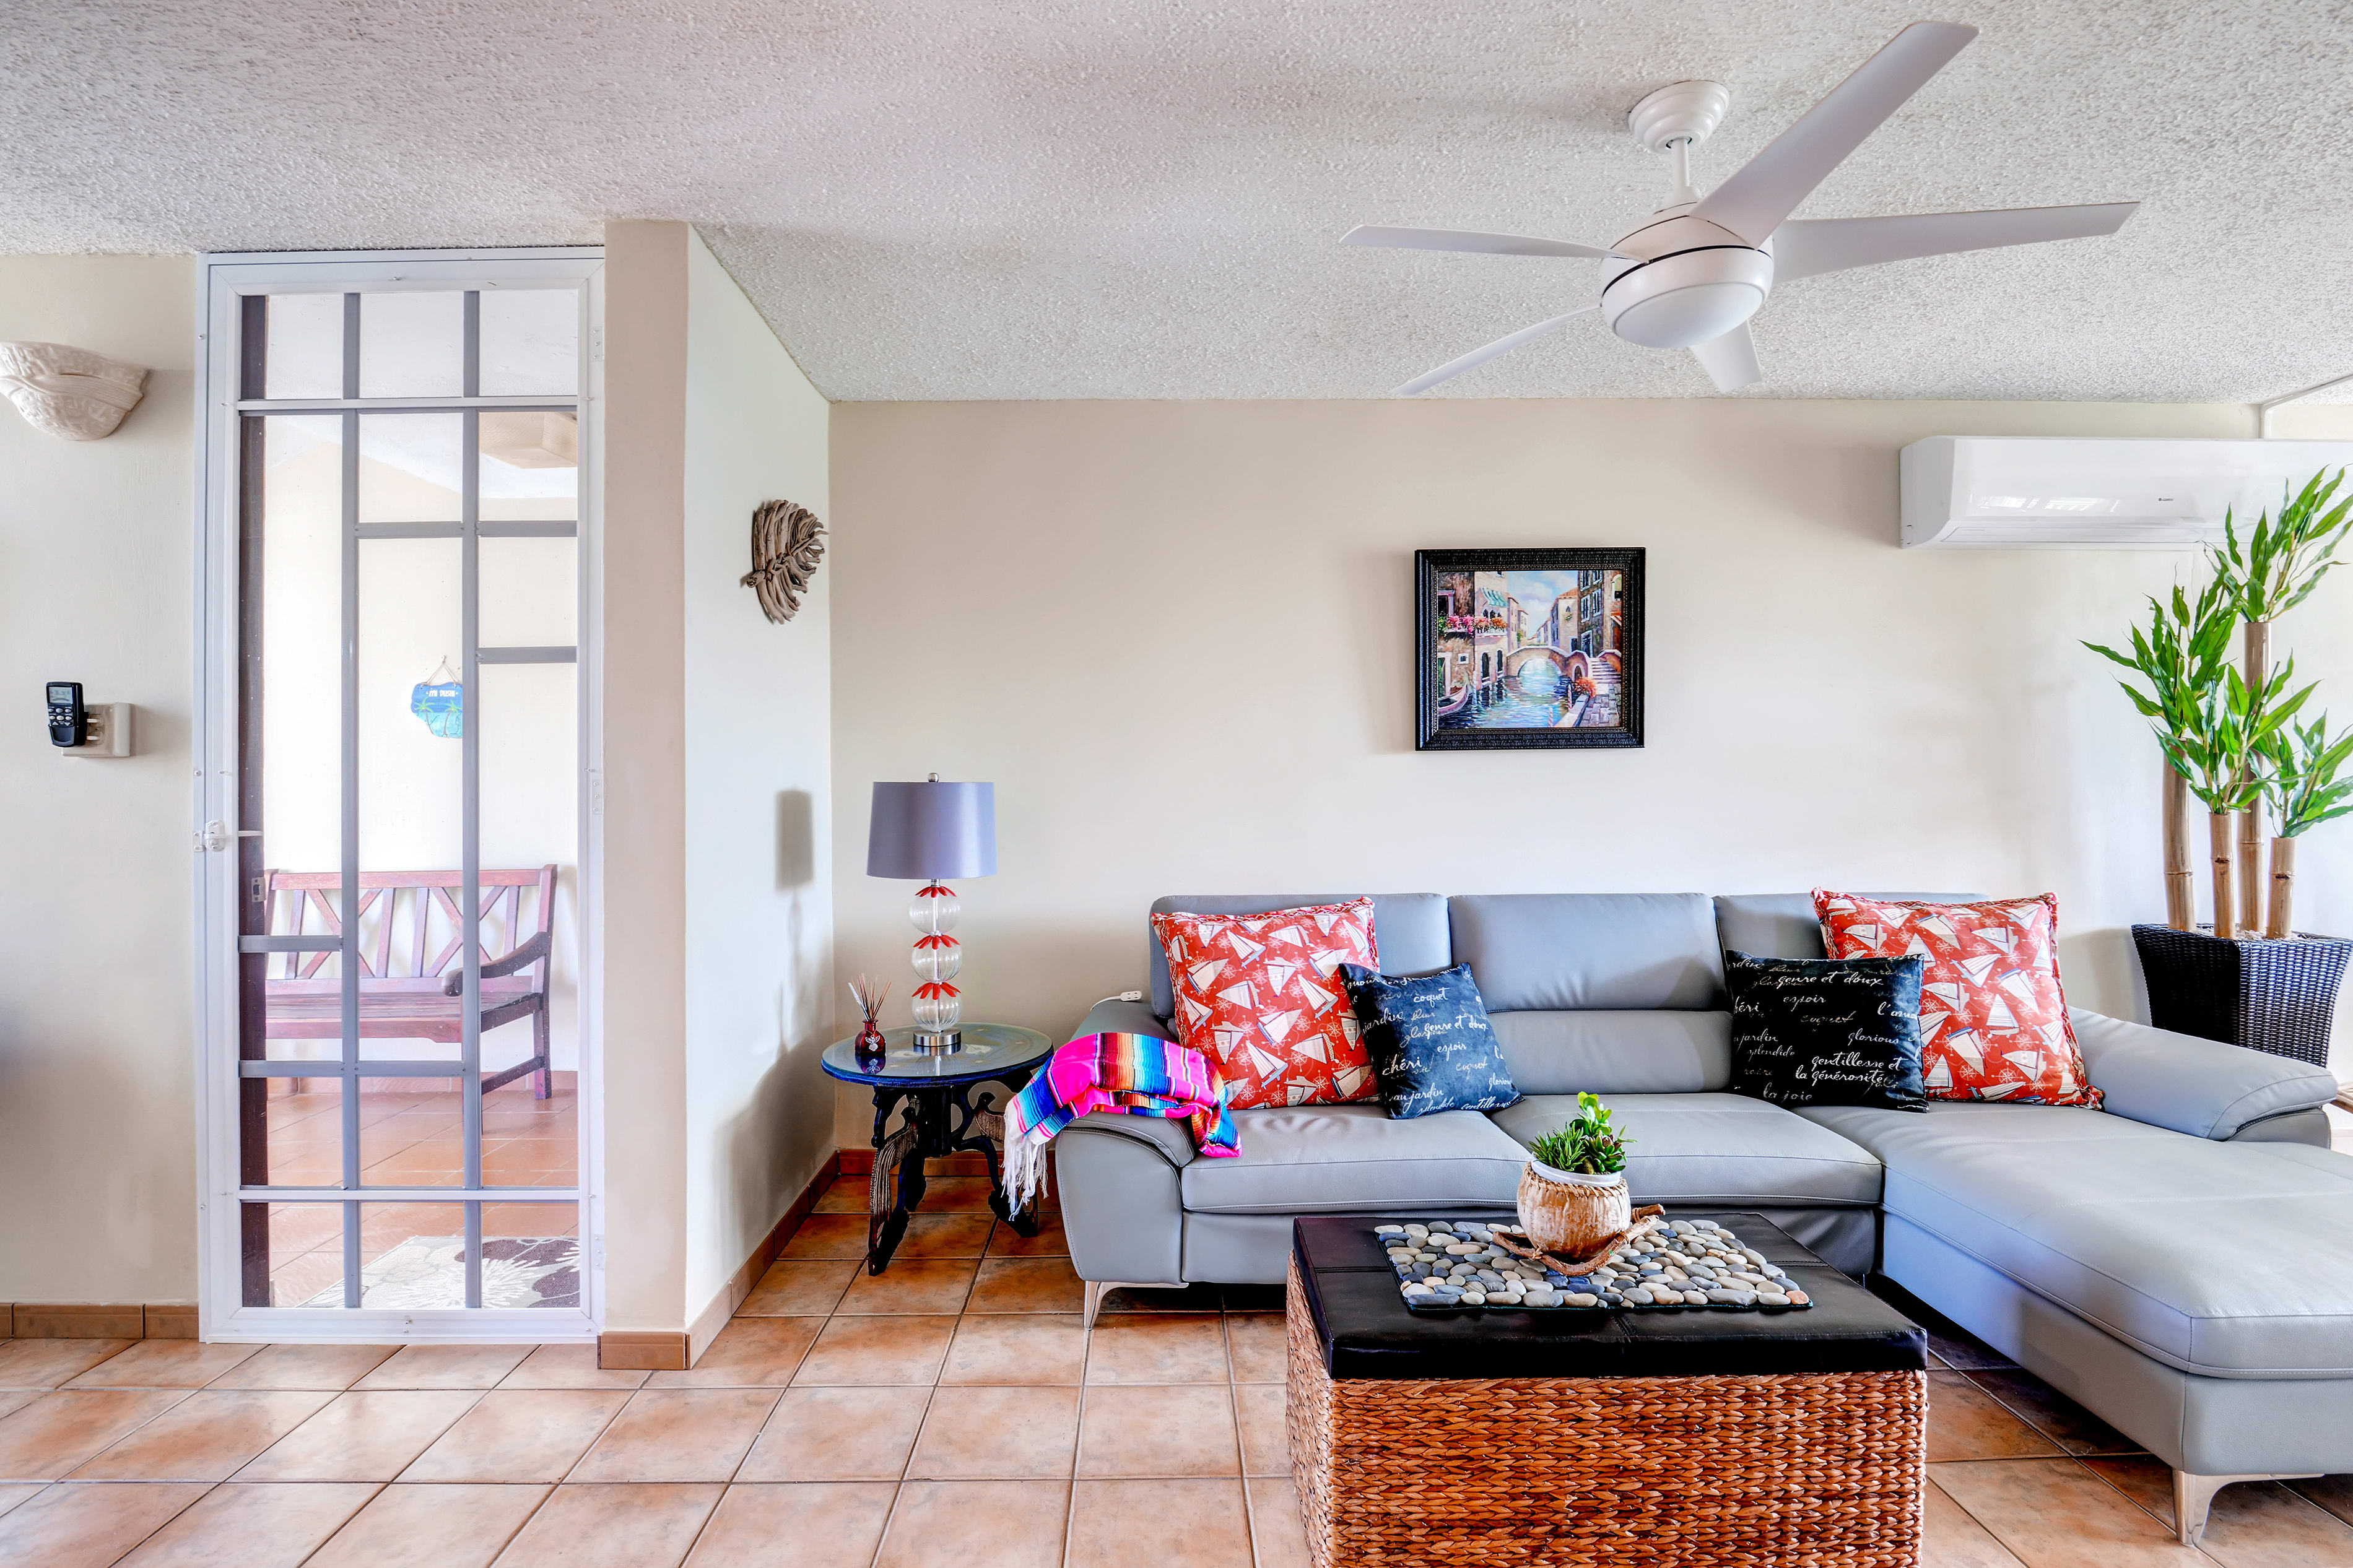 Living Room | Free WiFi | Wall-Unit Air Conditioners